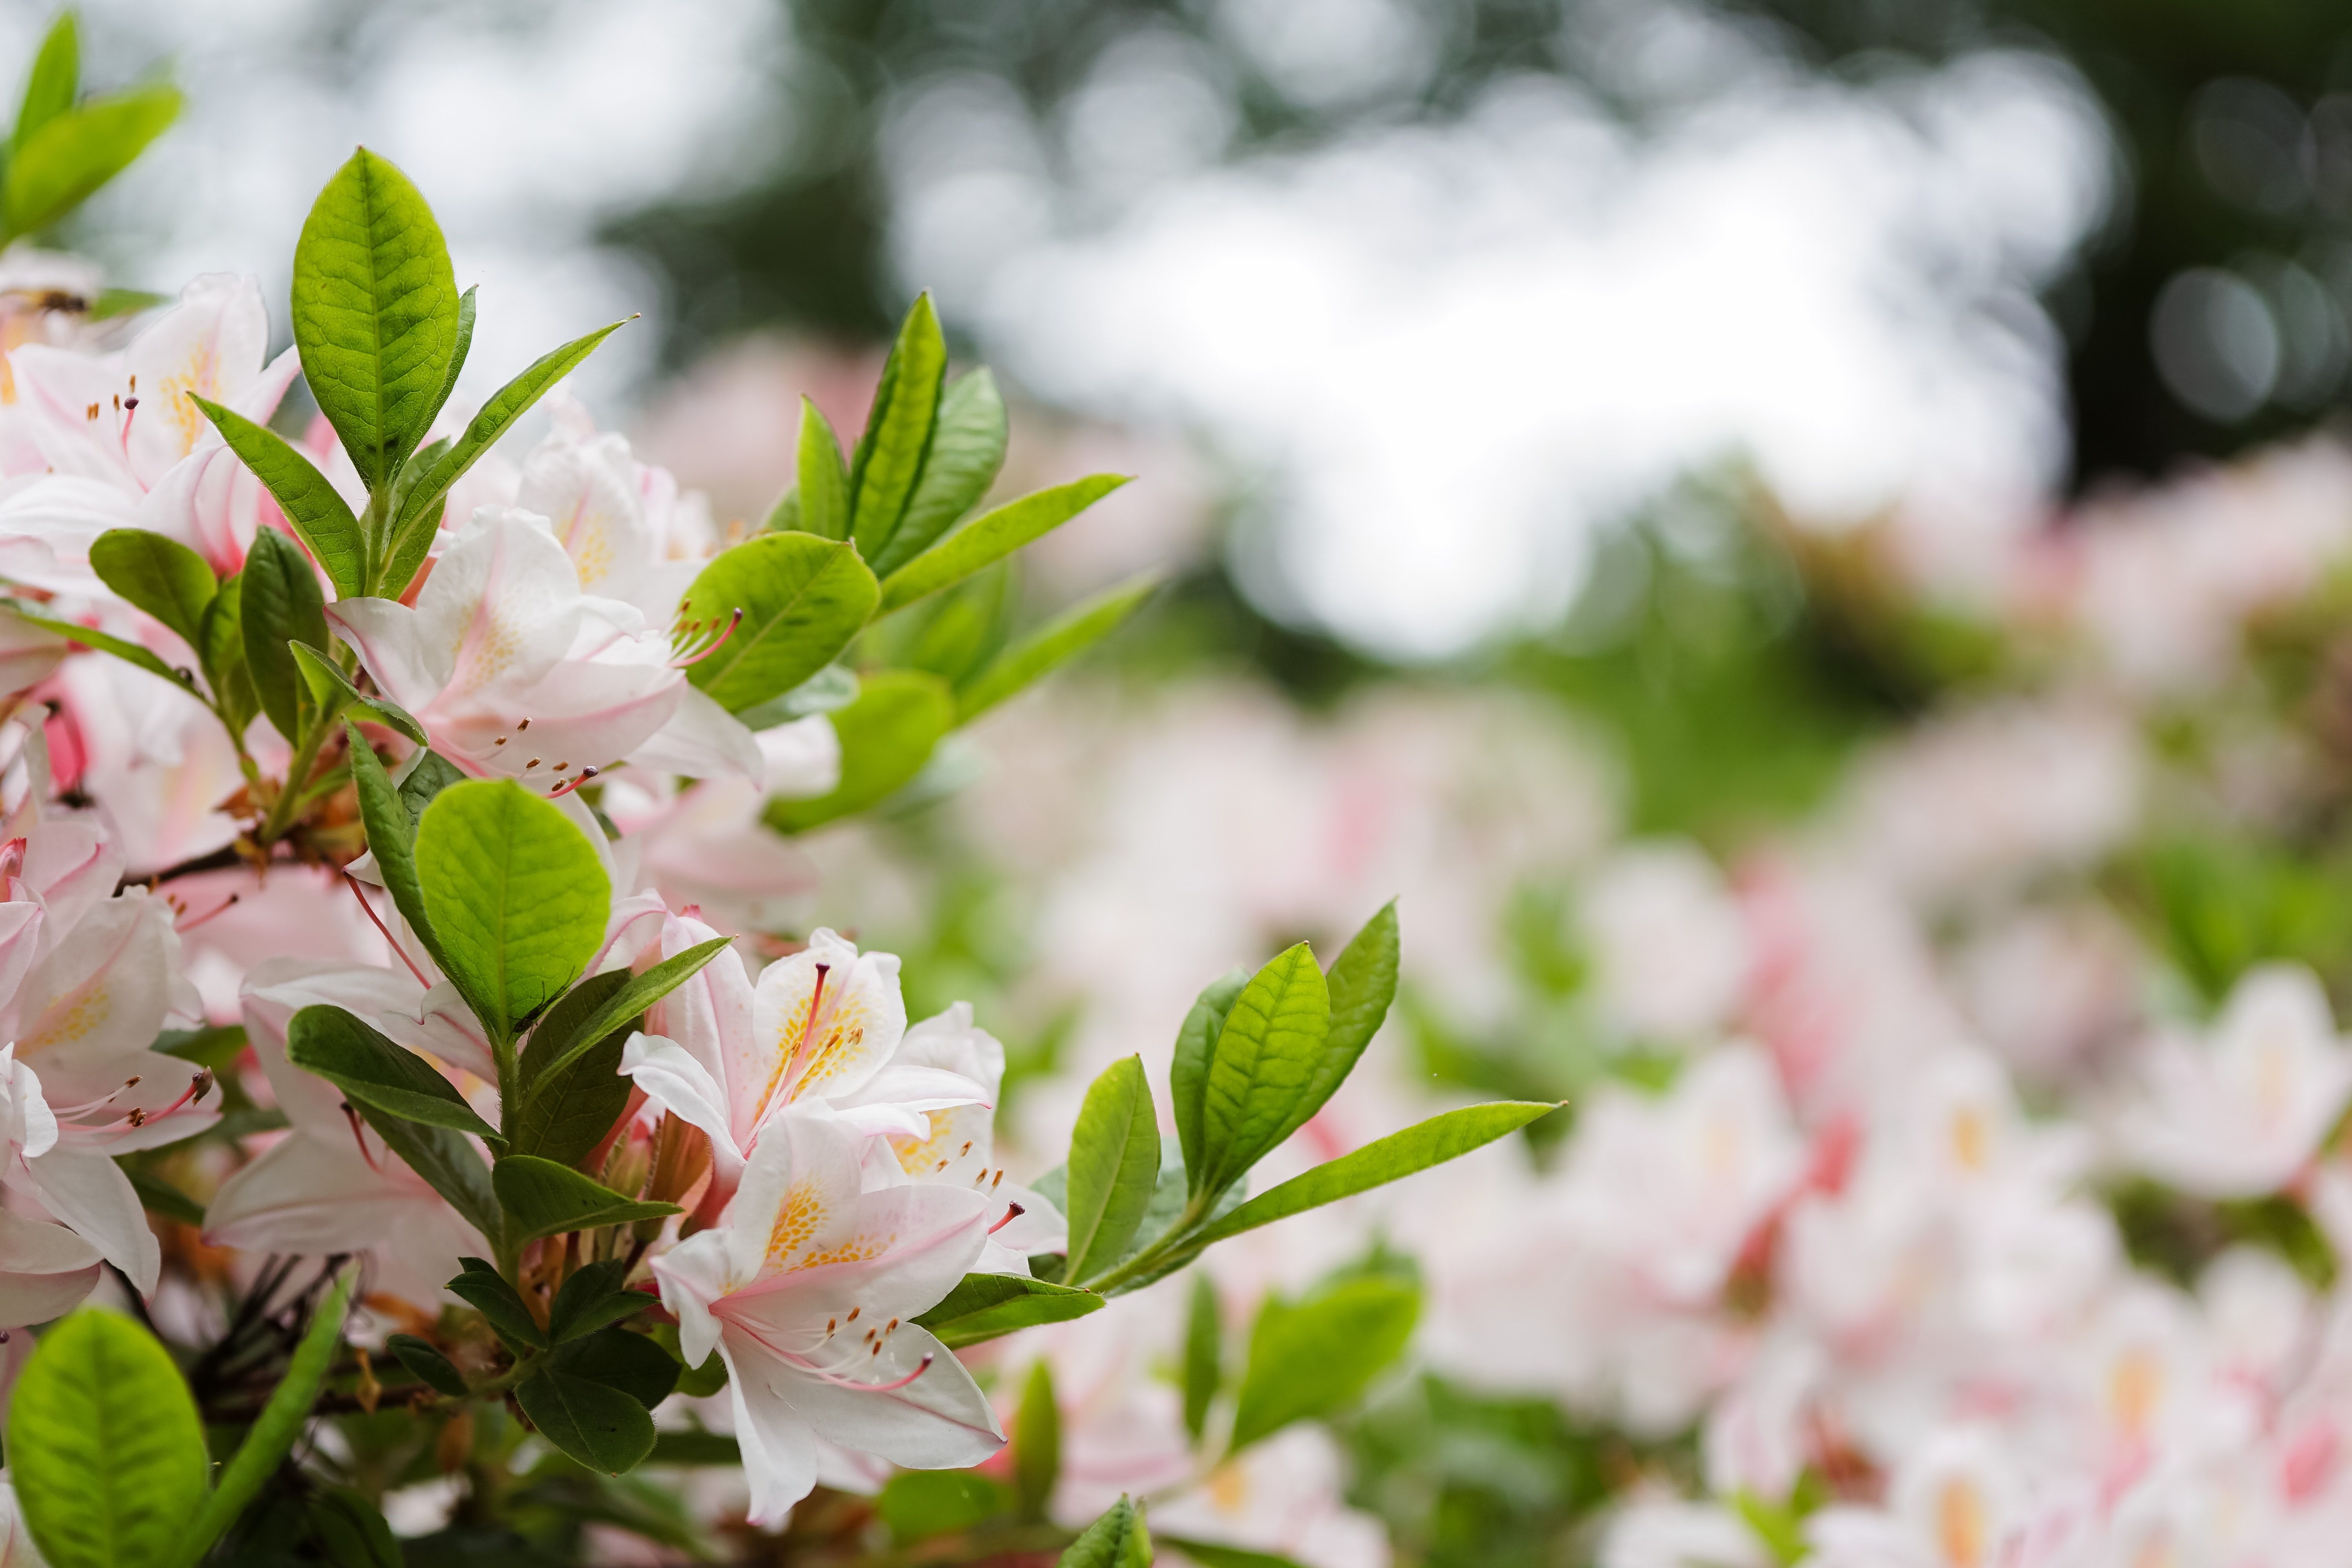 shallow focus photography of white-and-pink petaled flowers